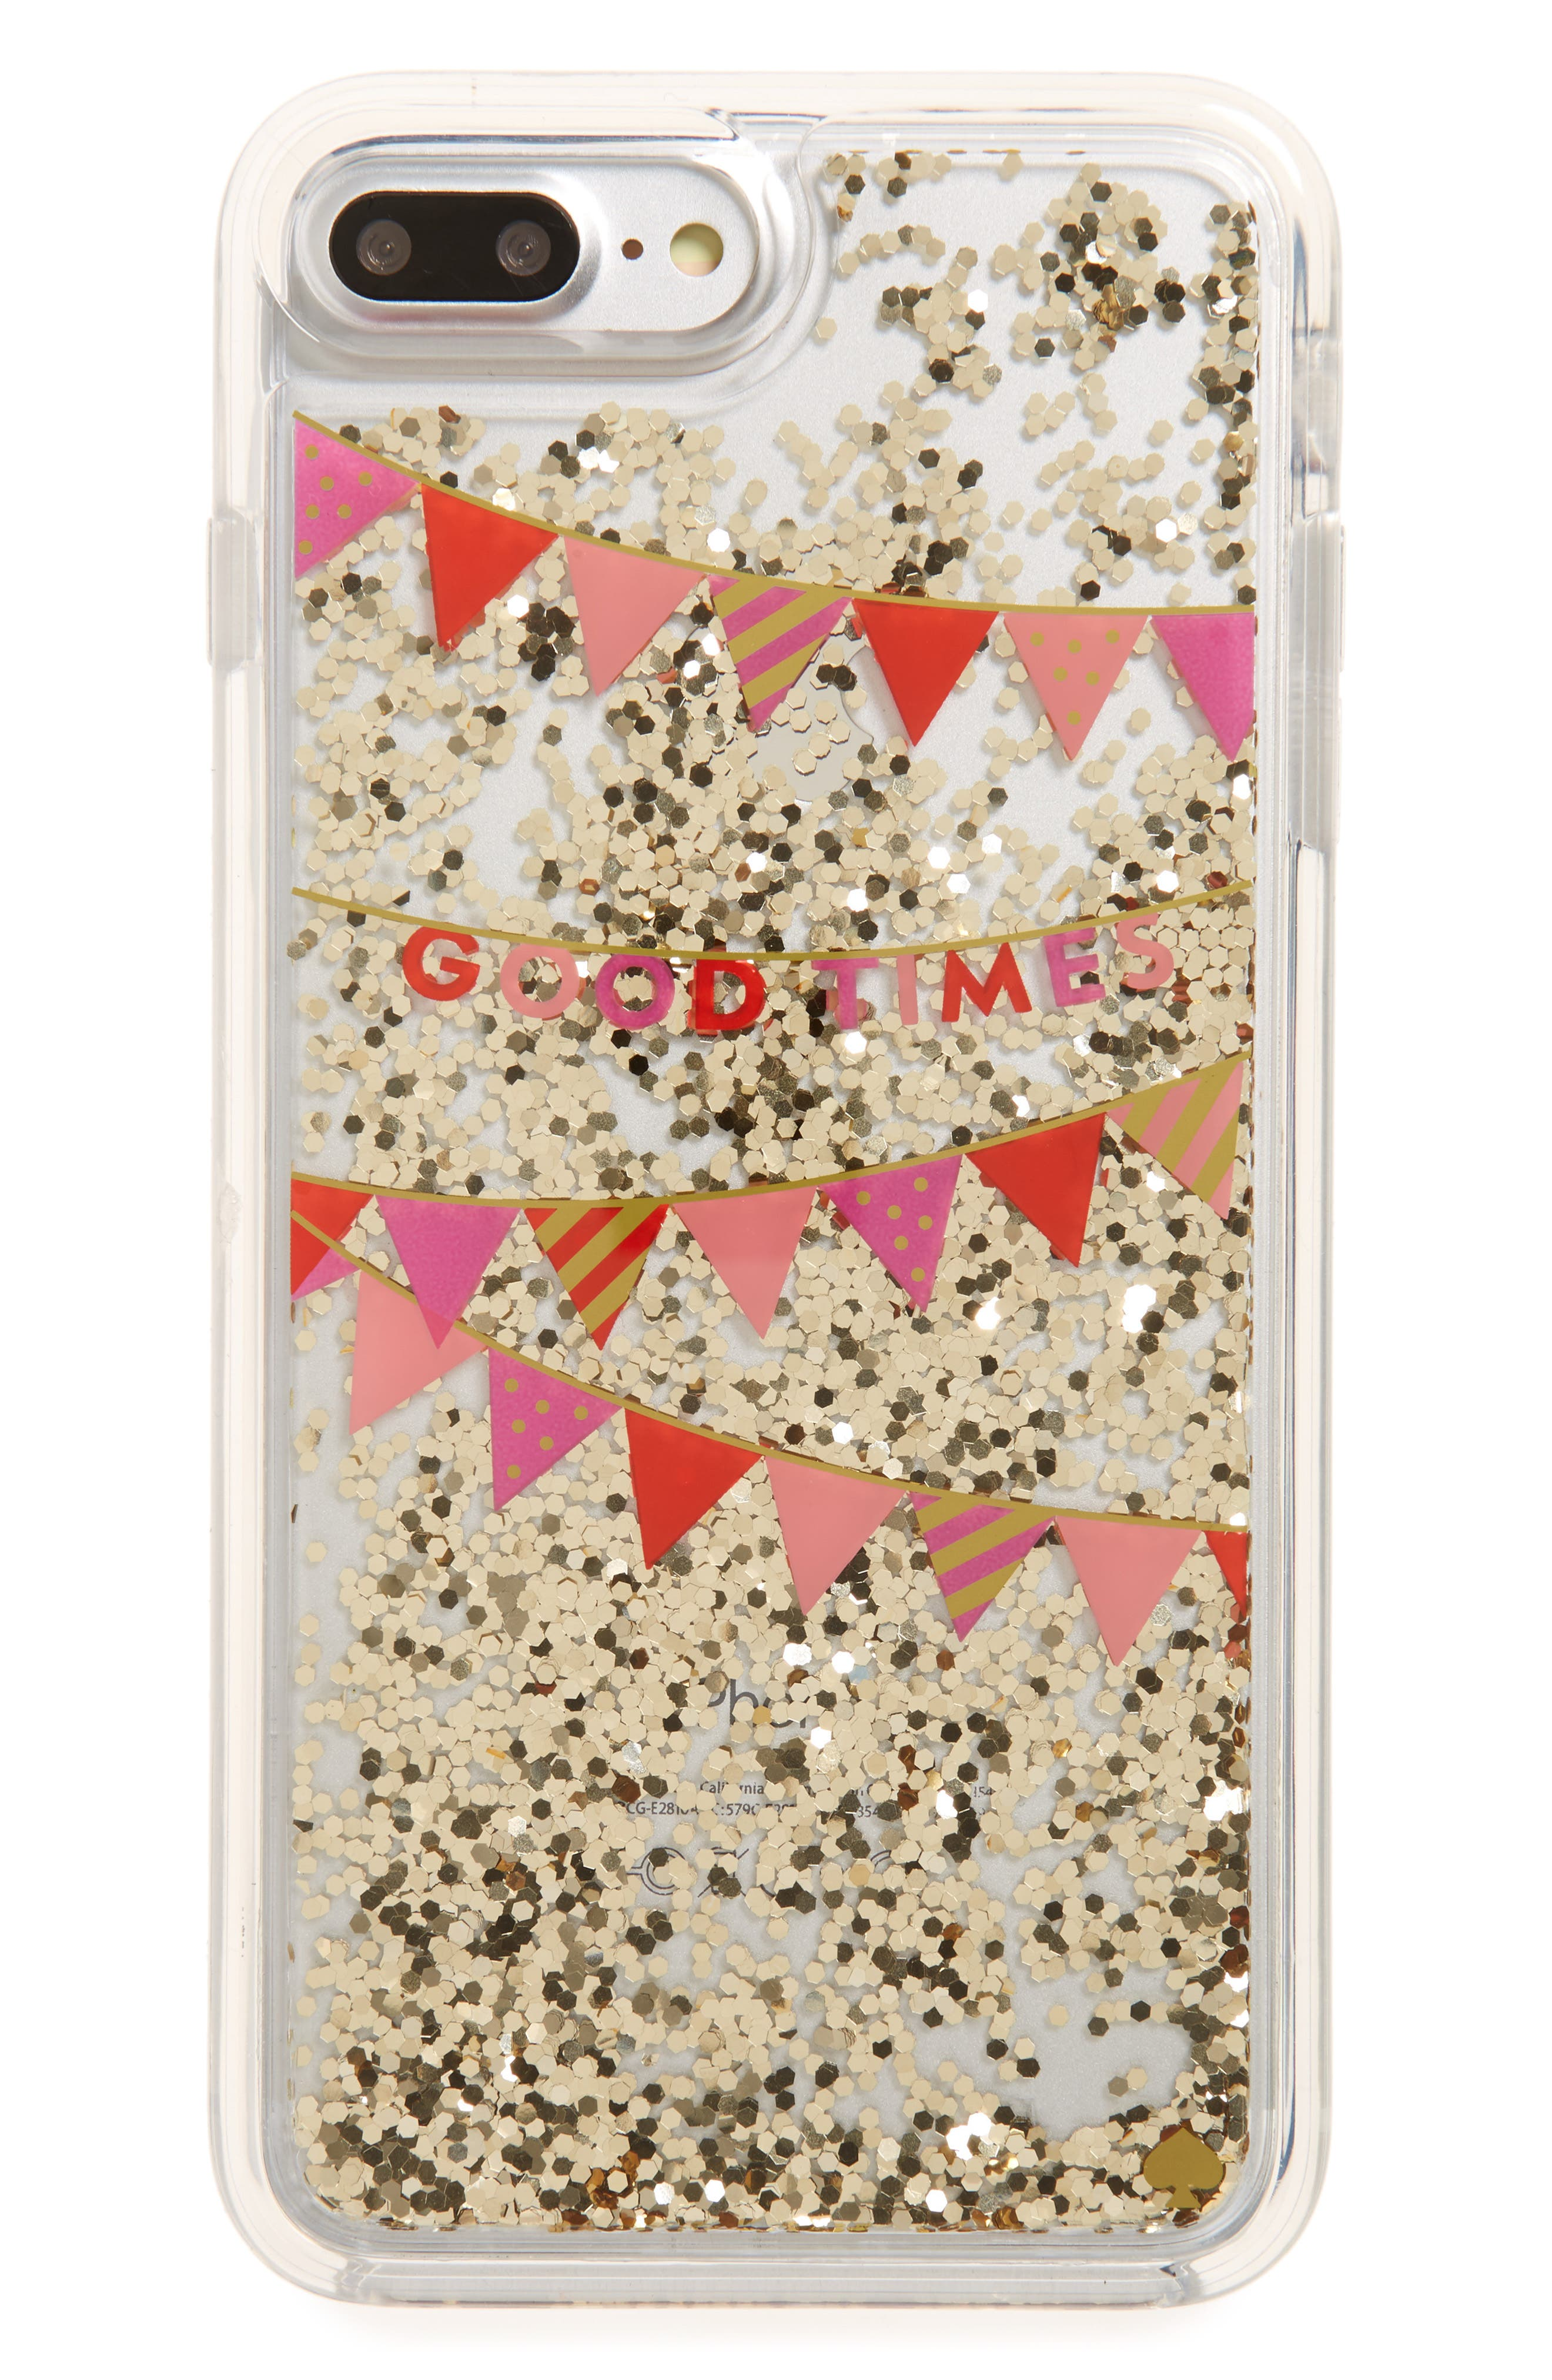 KATE SPADE NEW YORK good times confetti iPhone 7 & 7 Plus case